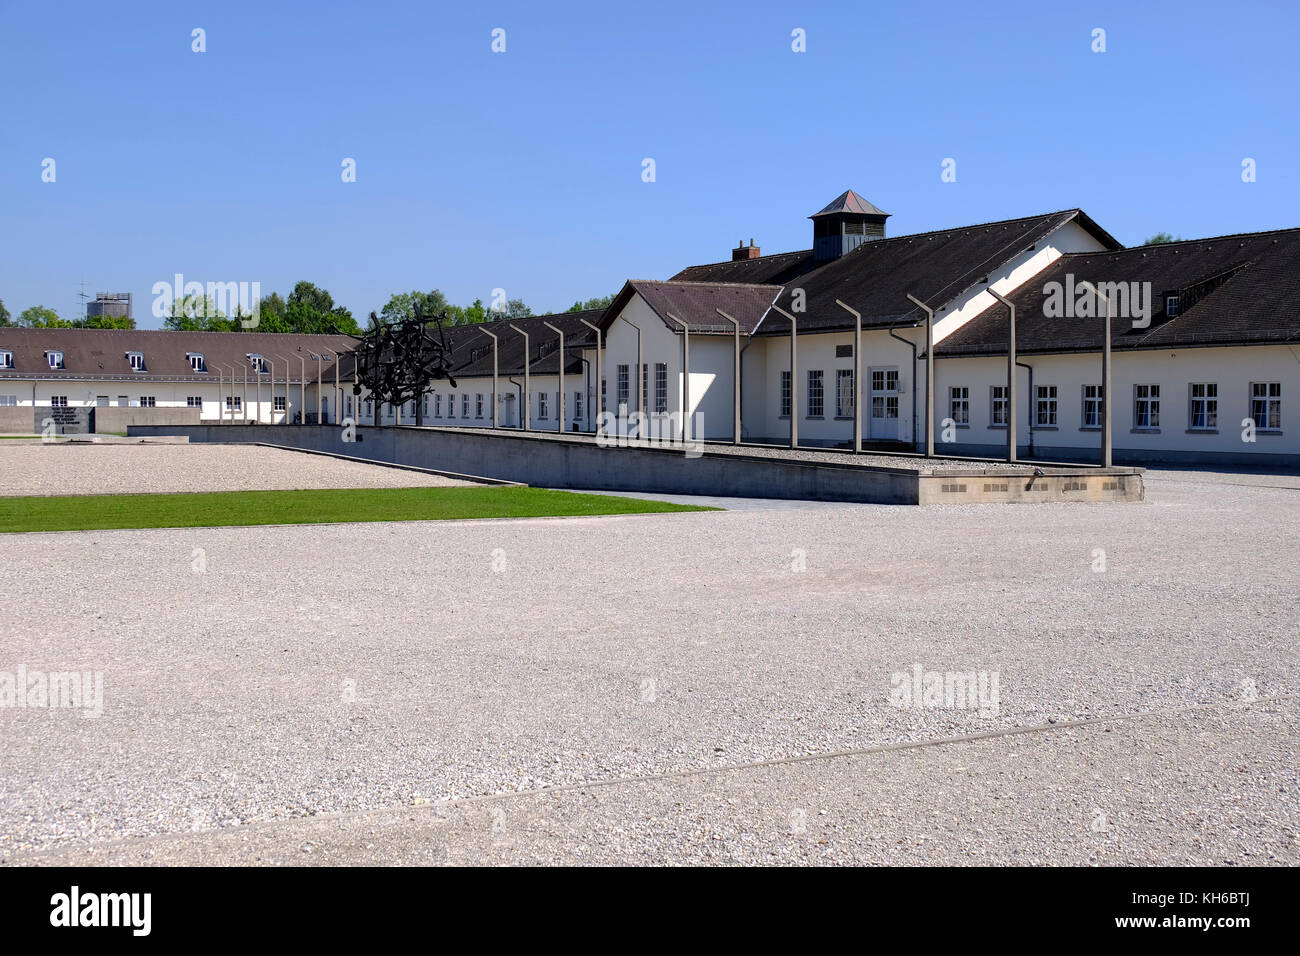 Dachau concentration camp, Germany. - Stock Image